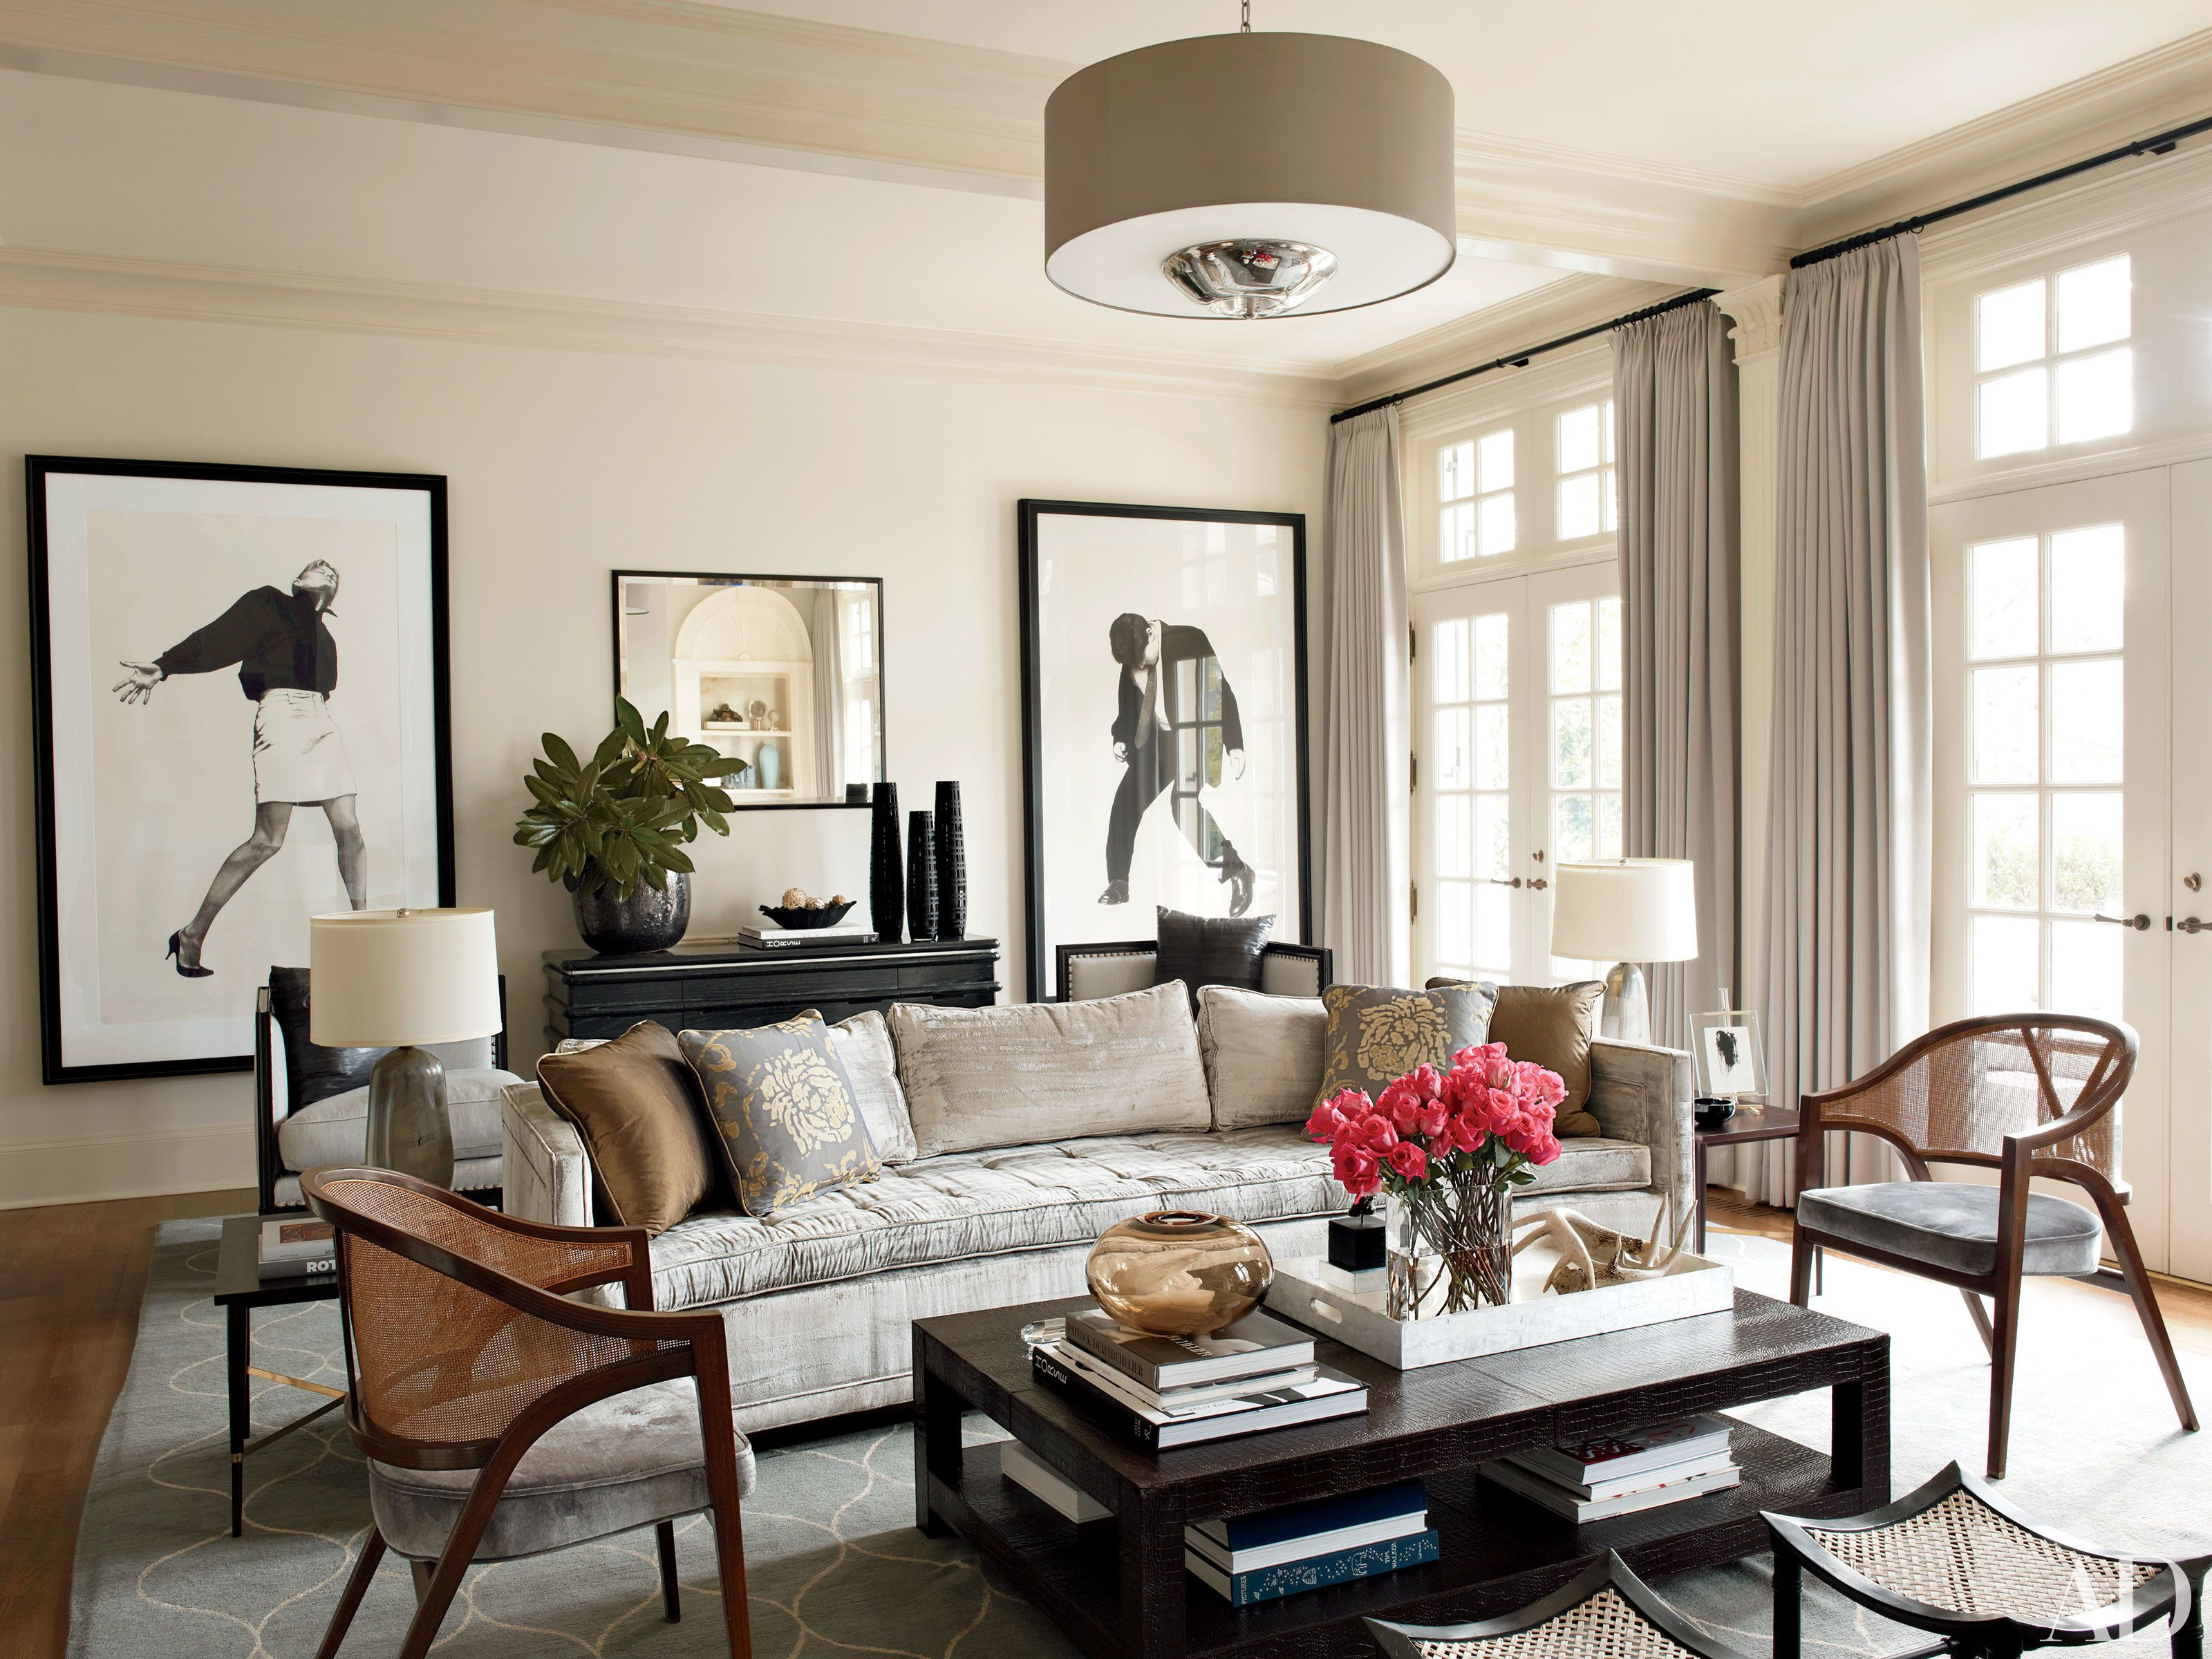 41+ Gray living room ideas 2019 ideas in 2021